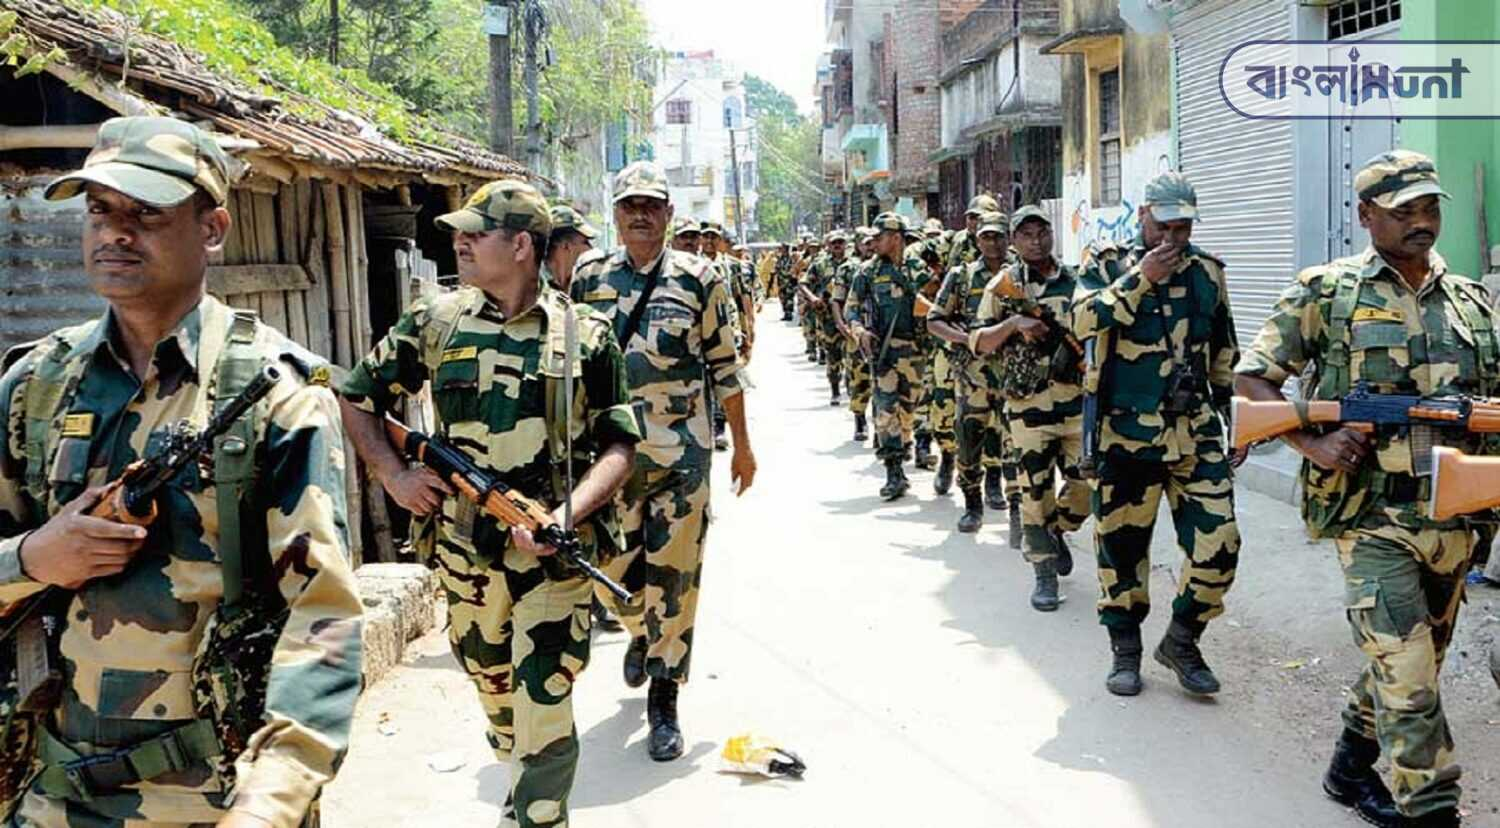 1071 company central forces are in Bengal